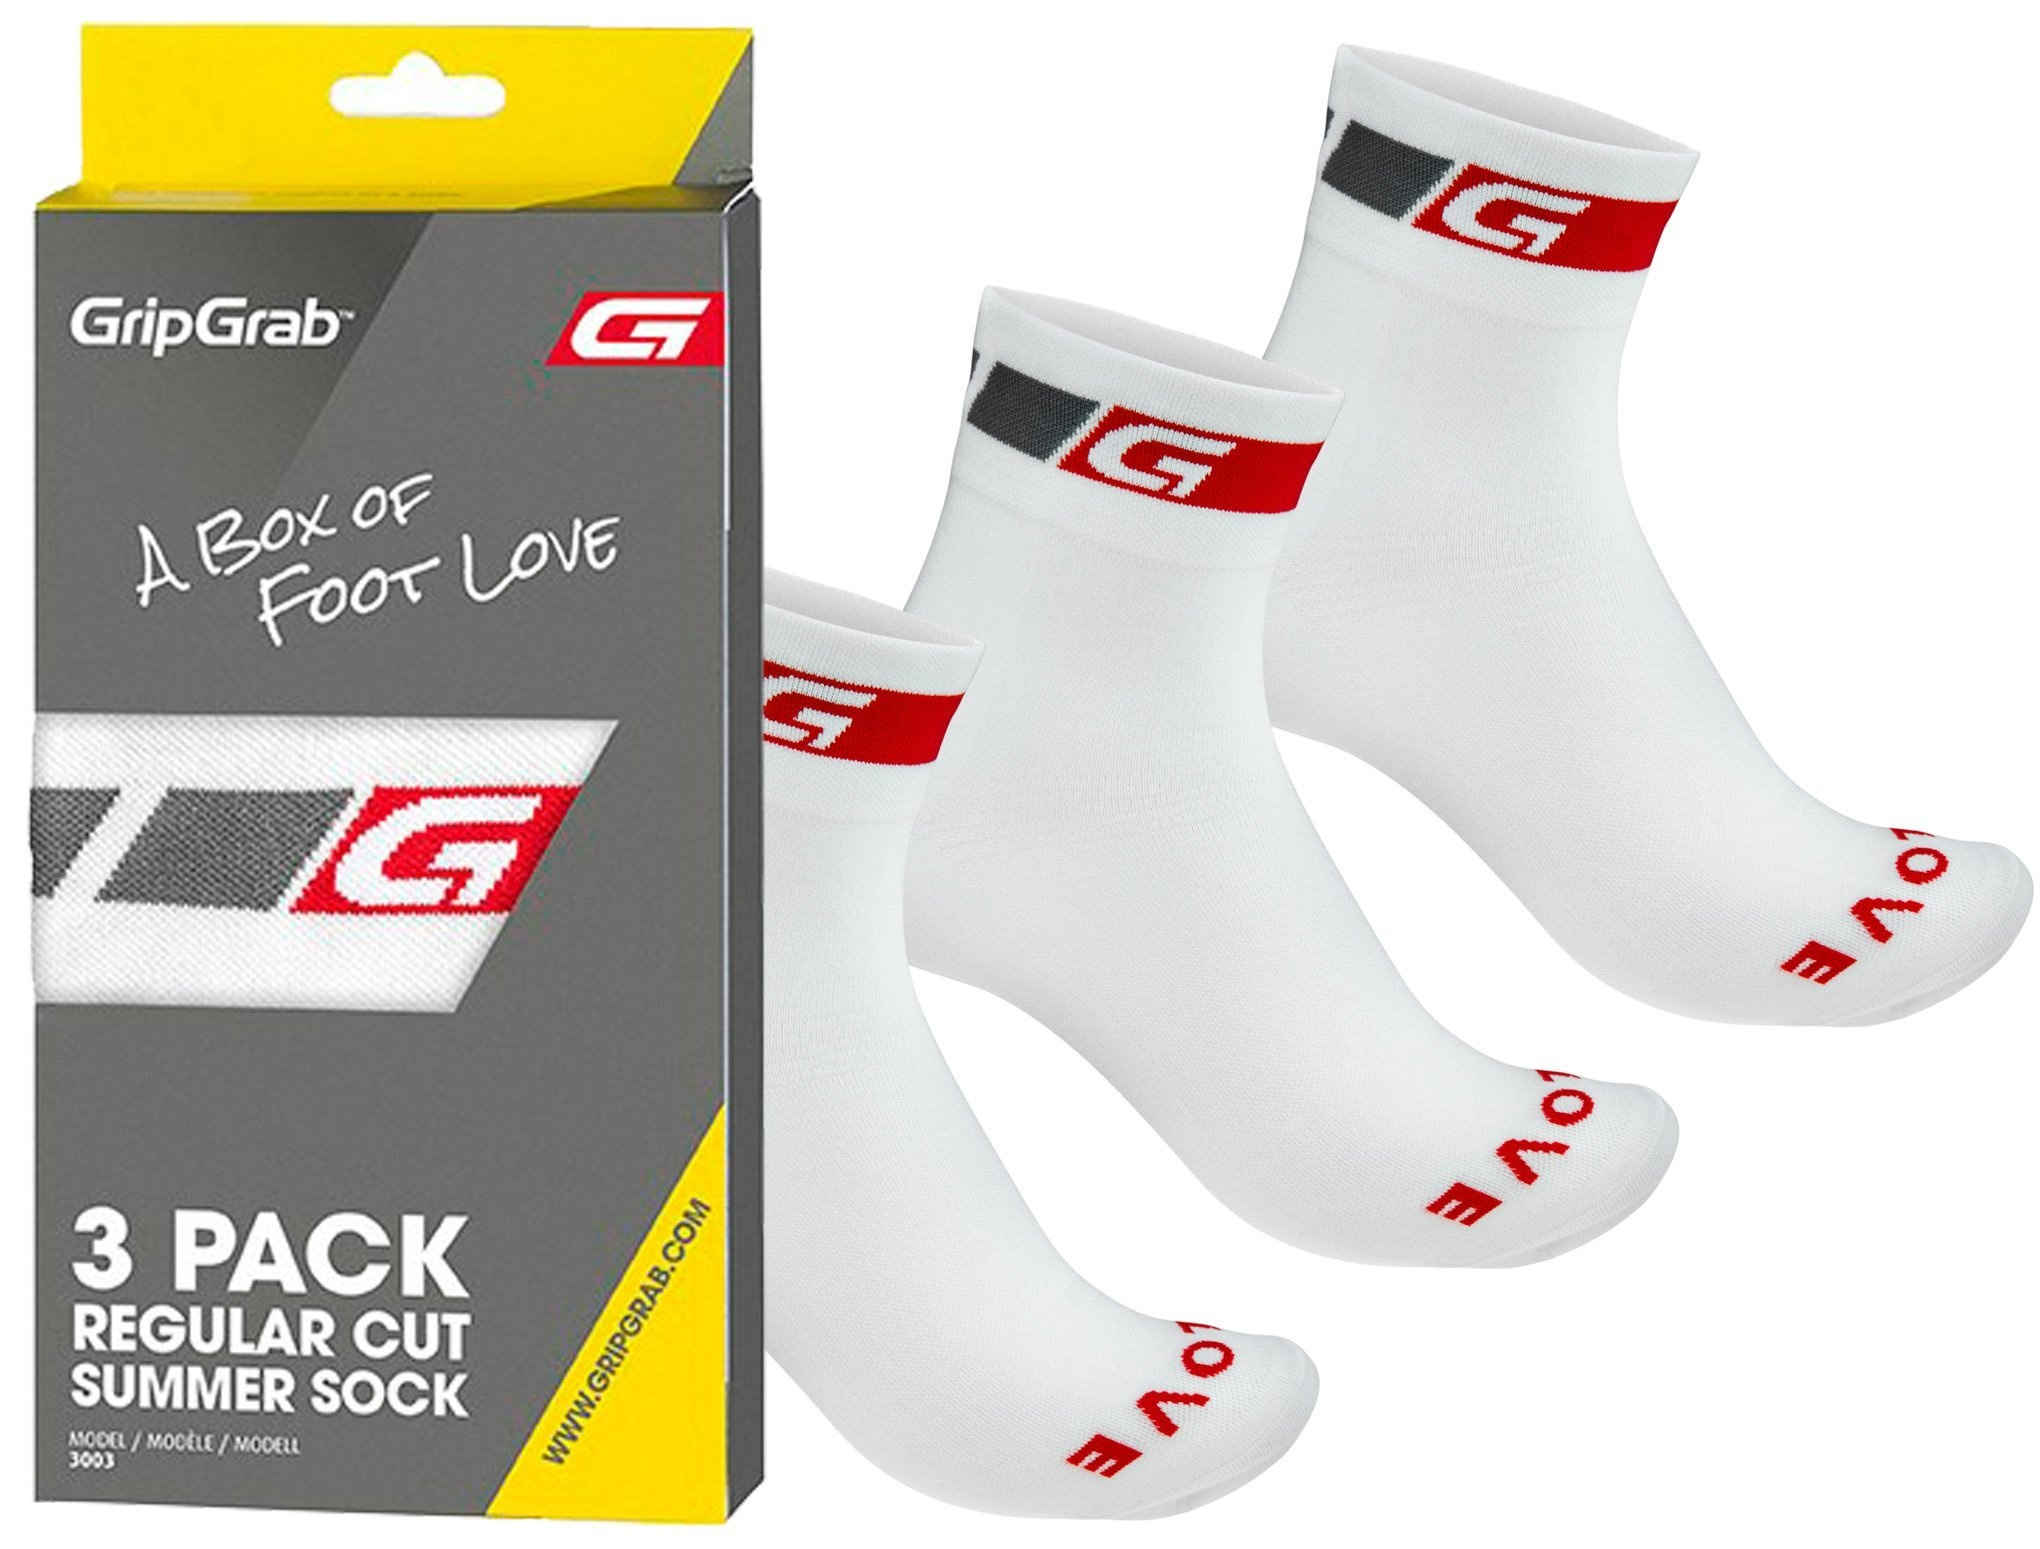 GripGrab 3-Pack Regular Cut Summer Sock, hvid